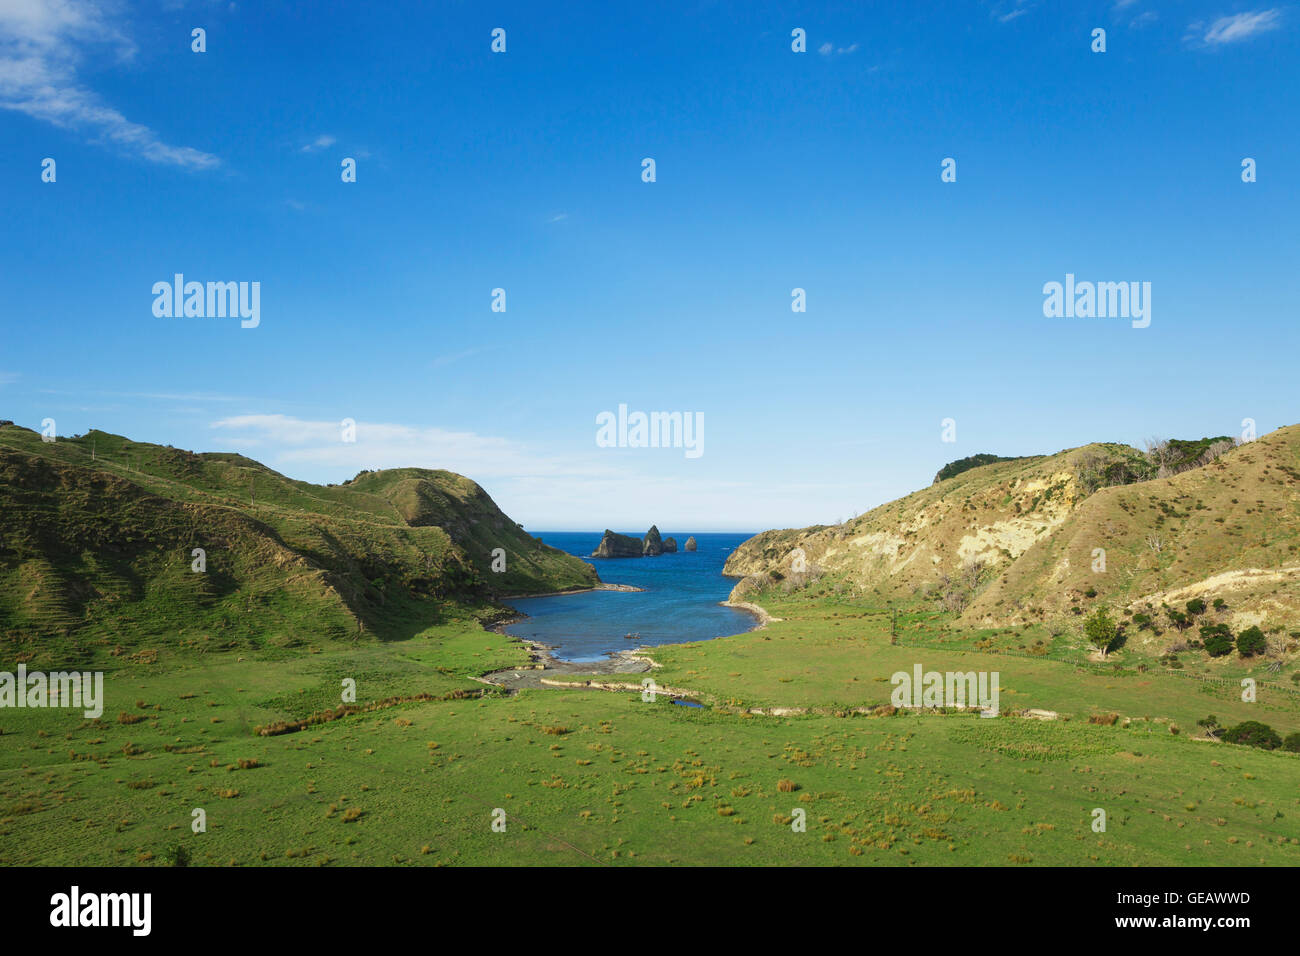 New Zealand, North Island, East Cape, Tolaga Bay area, Cook's Cove - Stock Image